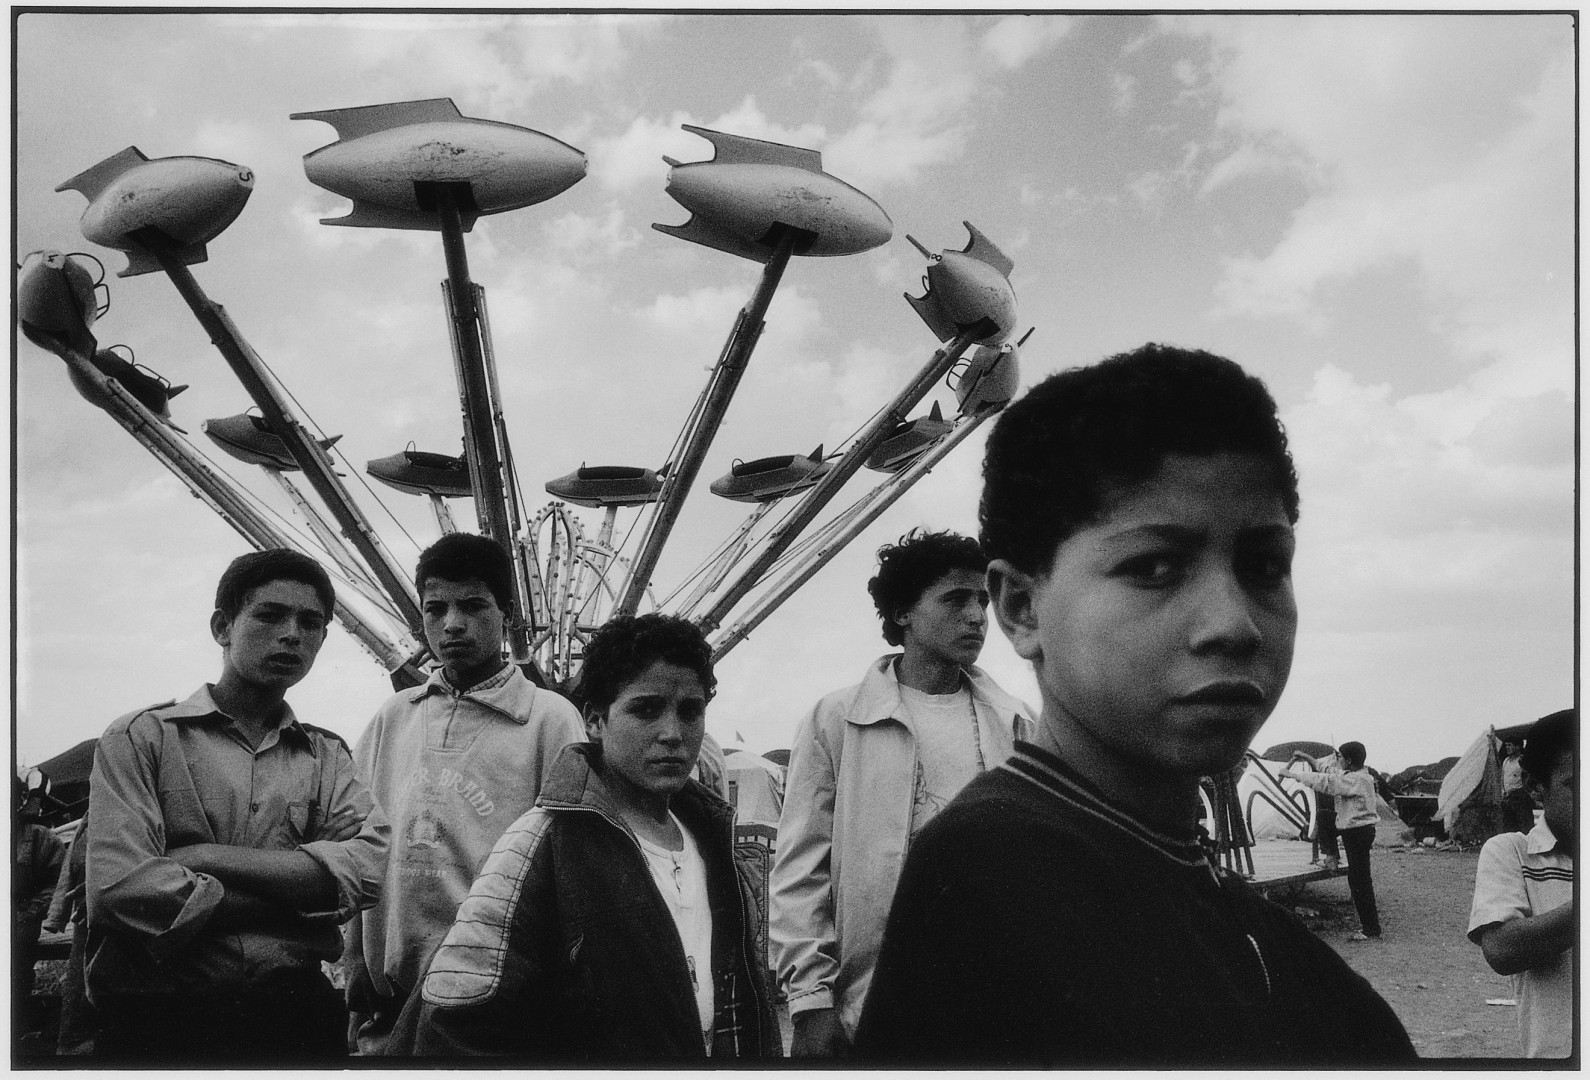 THE PHOTOGRAPHY Of DAOUD AOULAD SAID. THIS IMaGE Isn't in the museum, but many other riveting ones are